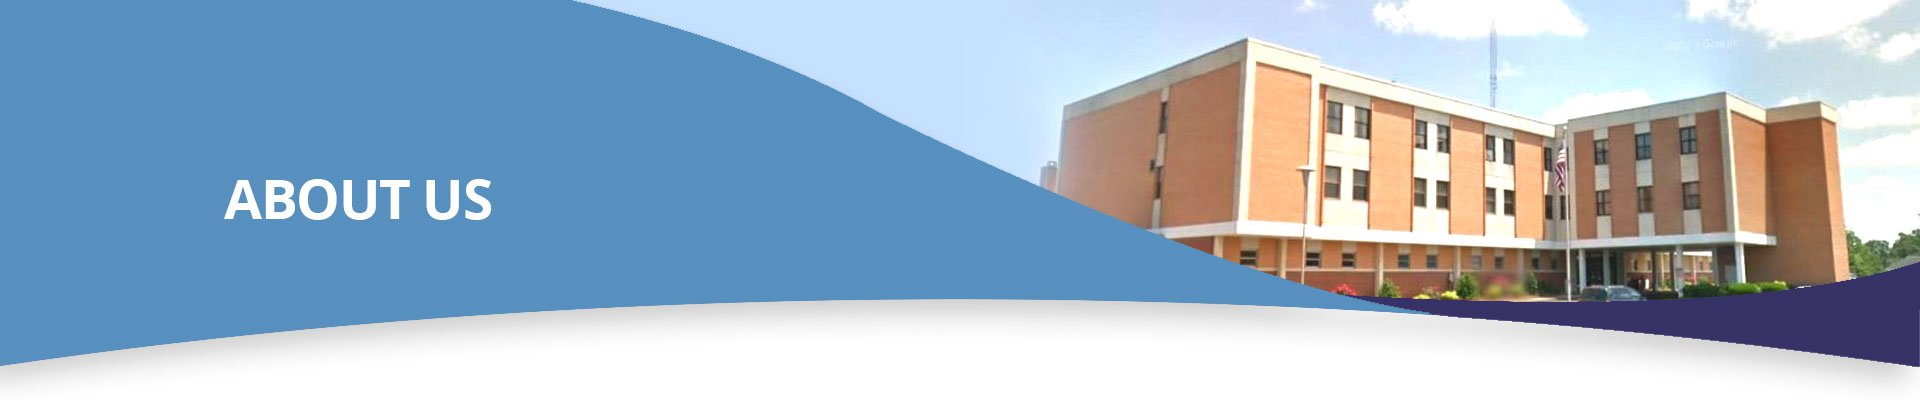 Banner picture of The Mizell Memorial Hospital. Banner says: ABOUT US